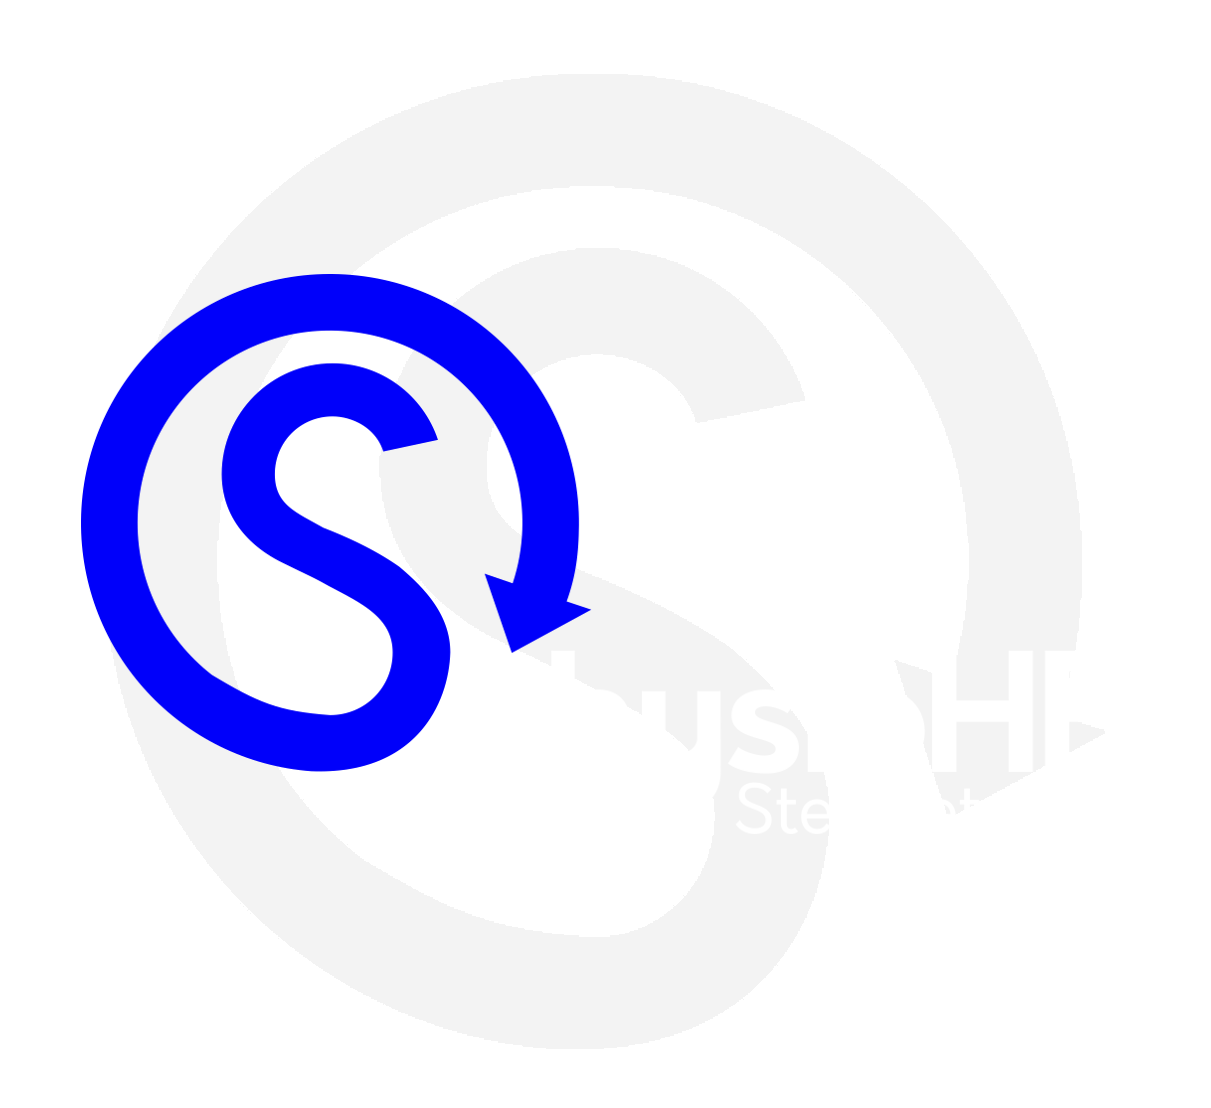 s-physioHP - Stev Peters